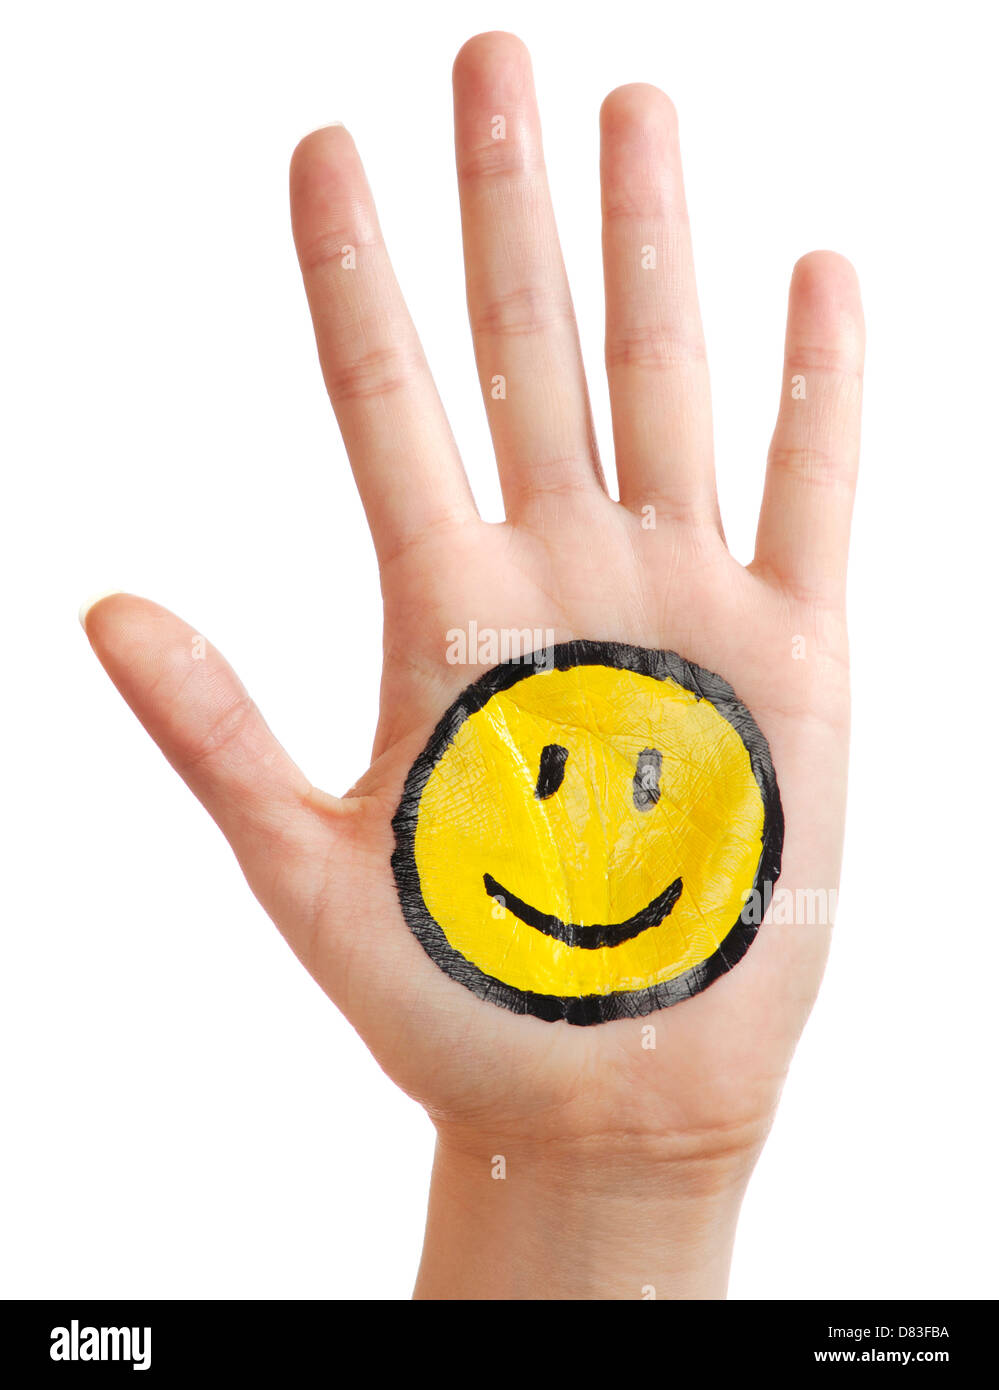 Open hand with a happy smiling smiley icon painted on it isolated on white background Stock Photo